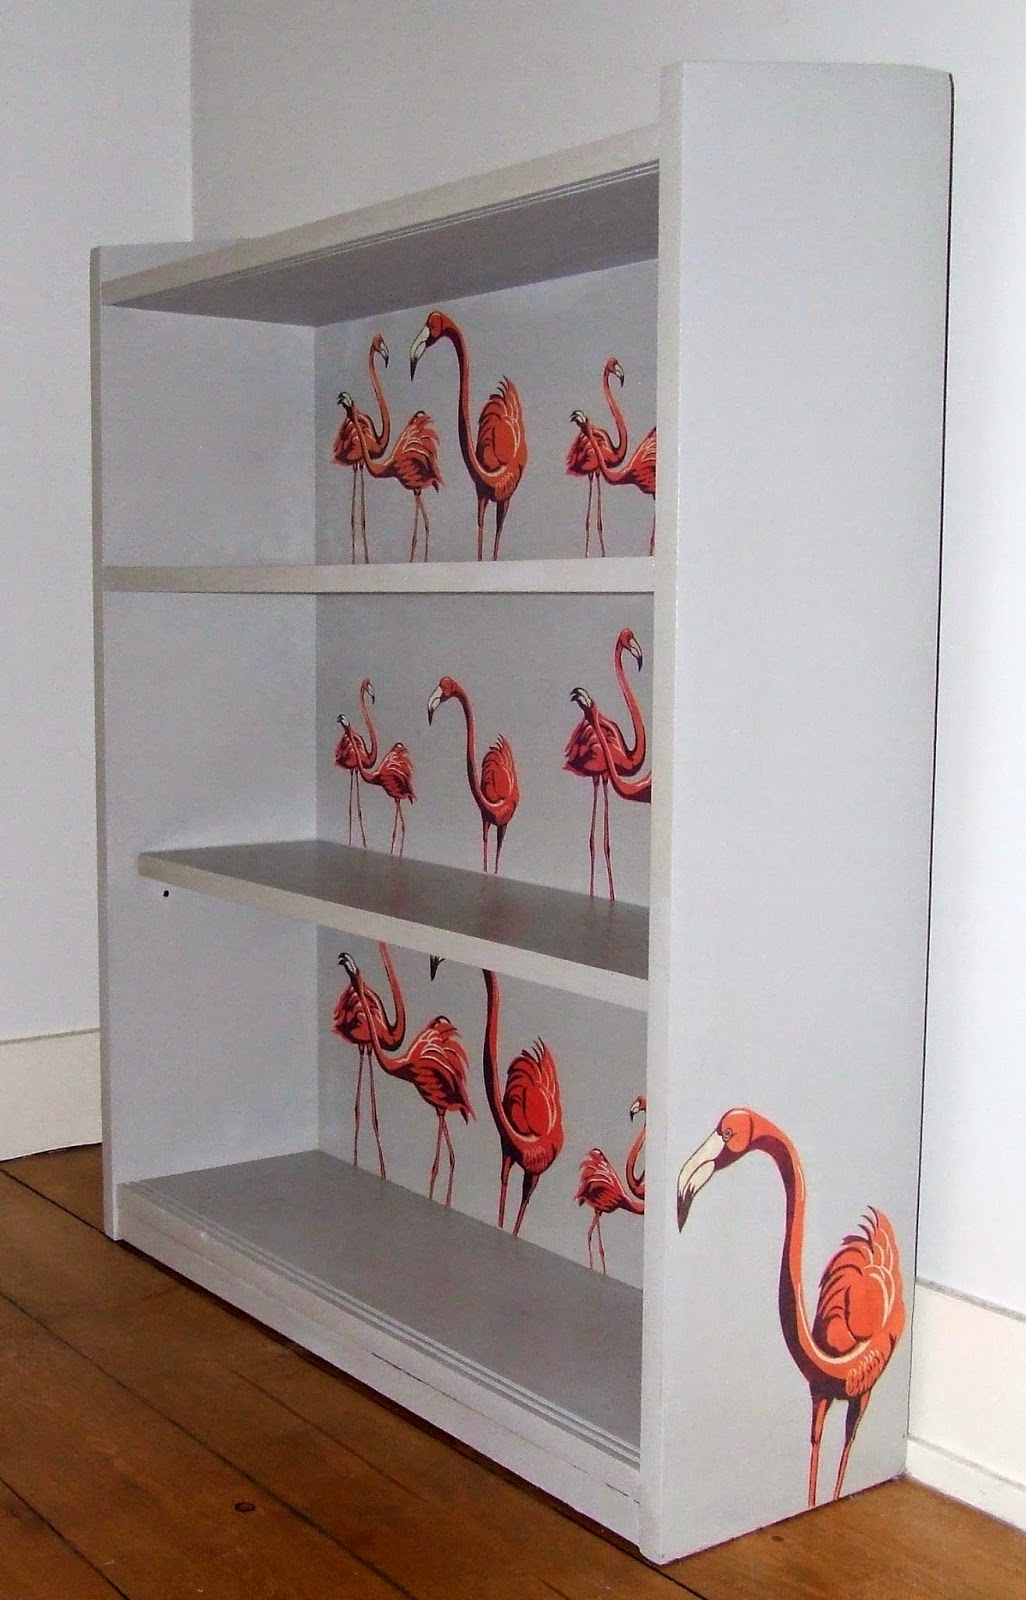 The finished flamingo bookcase